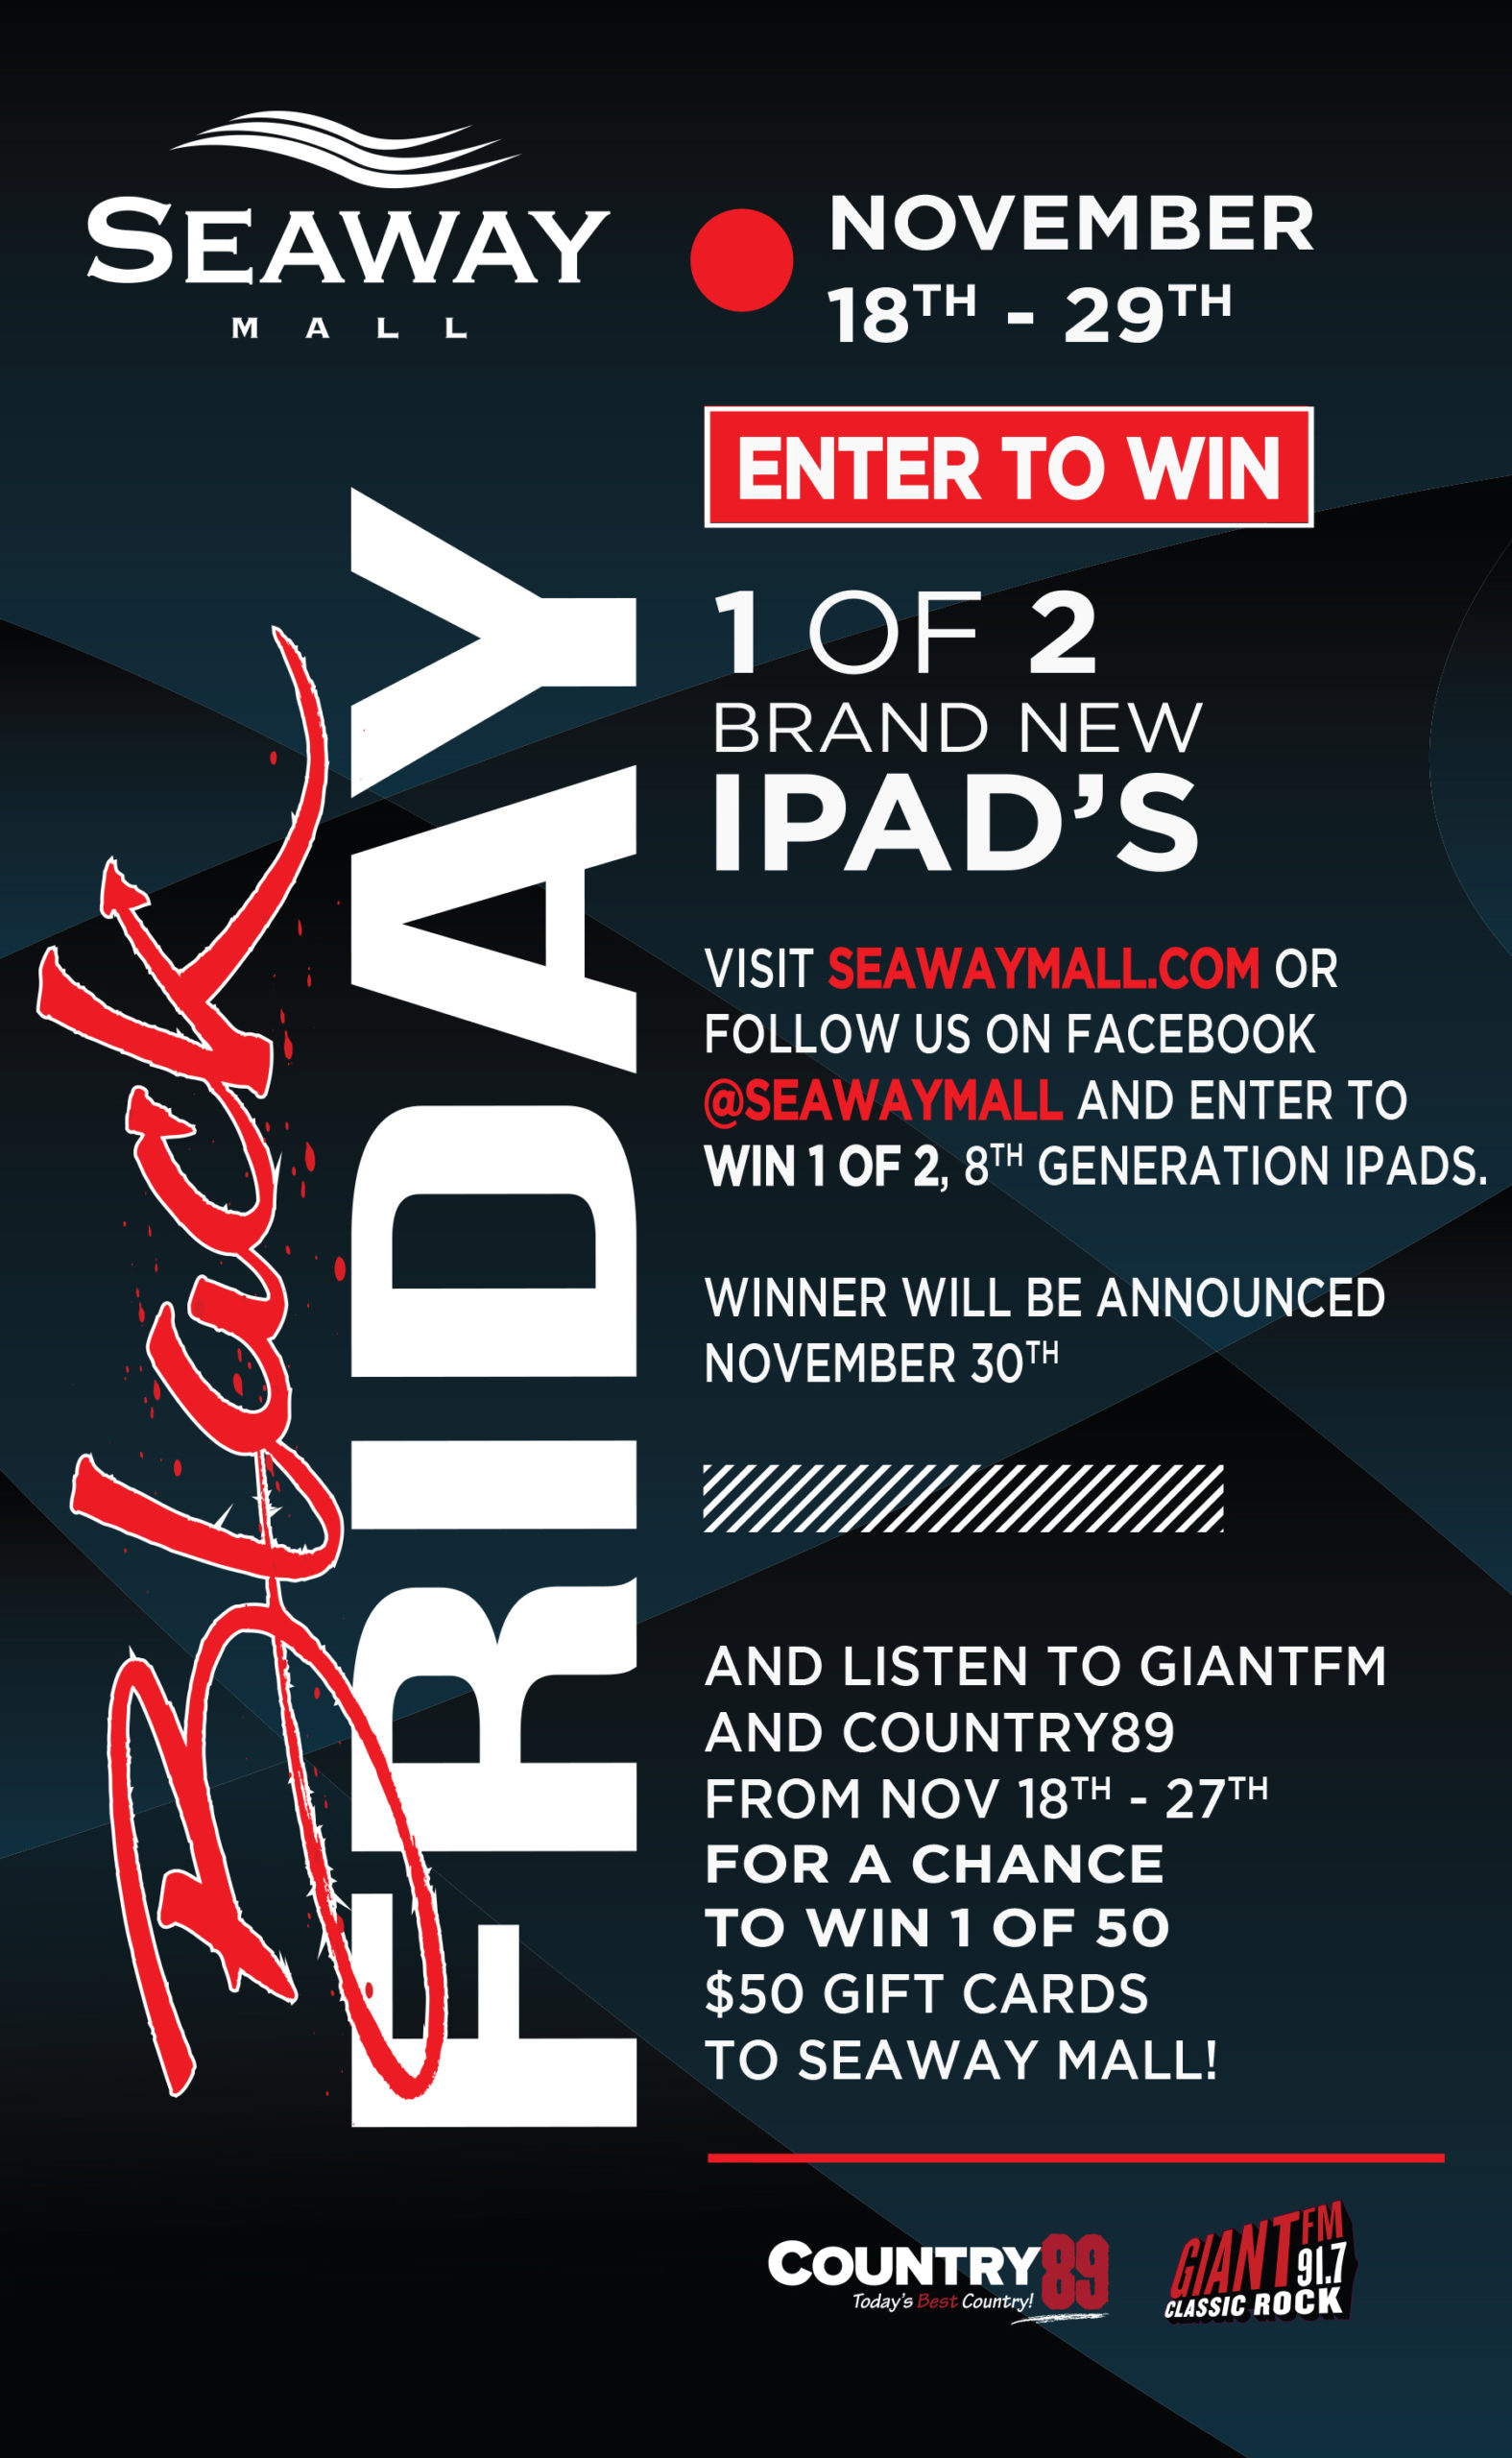 Win BIG this Black Friday with Seaway Mall